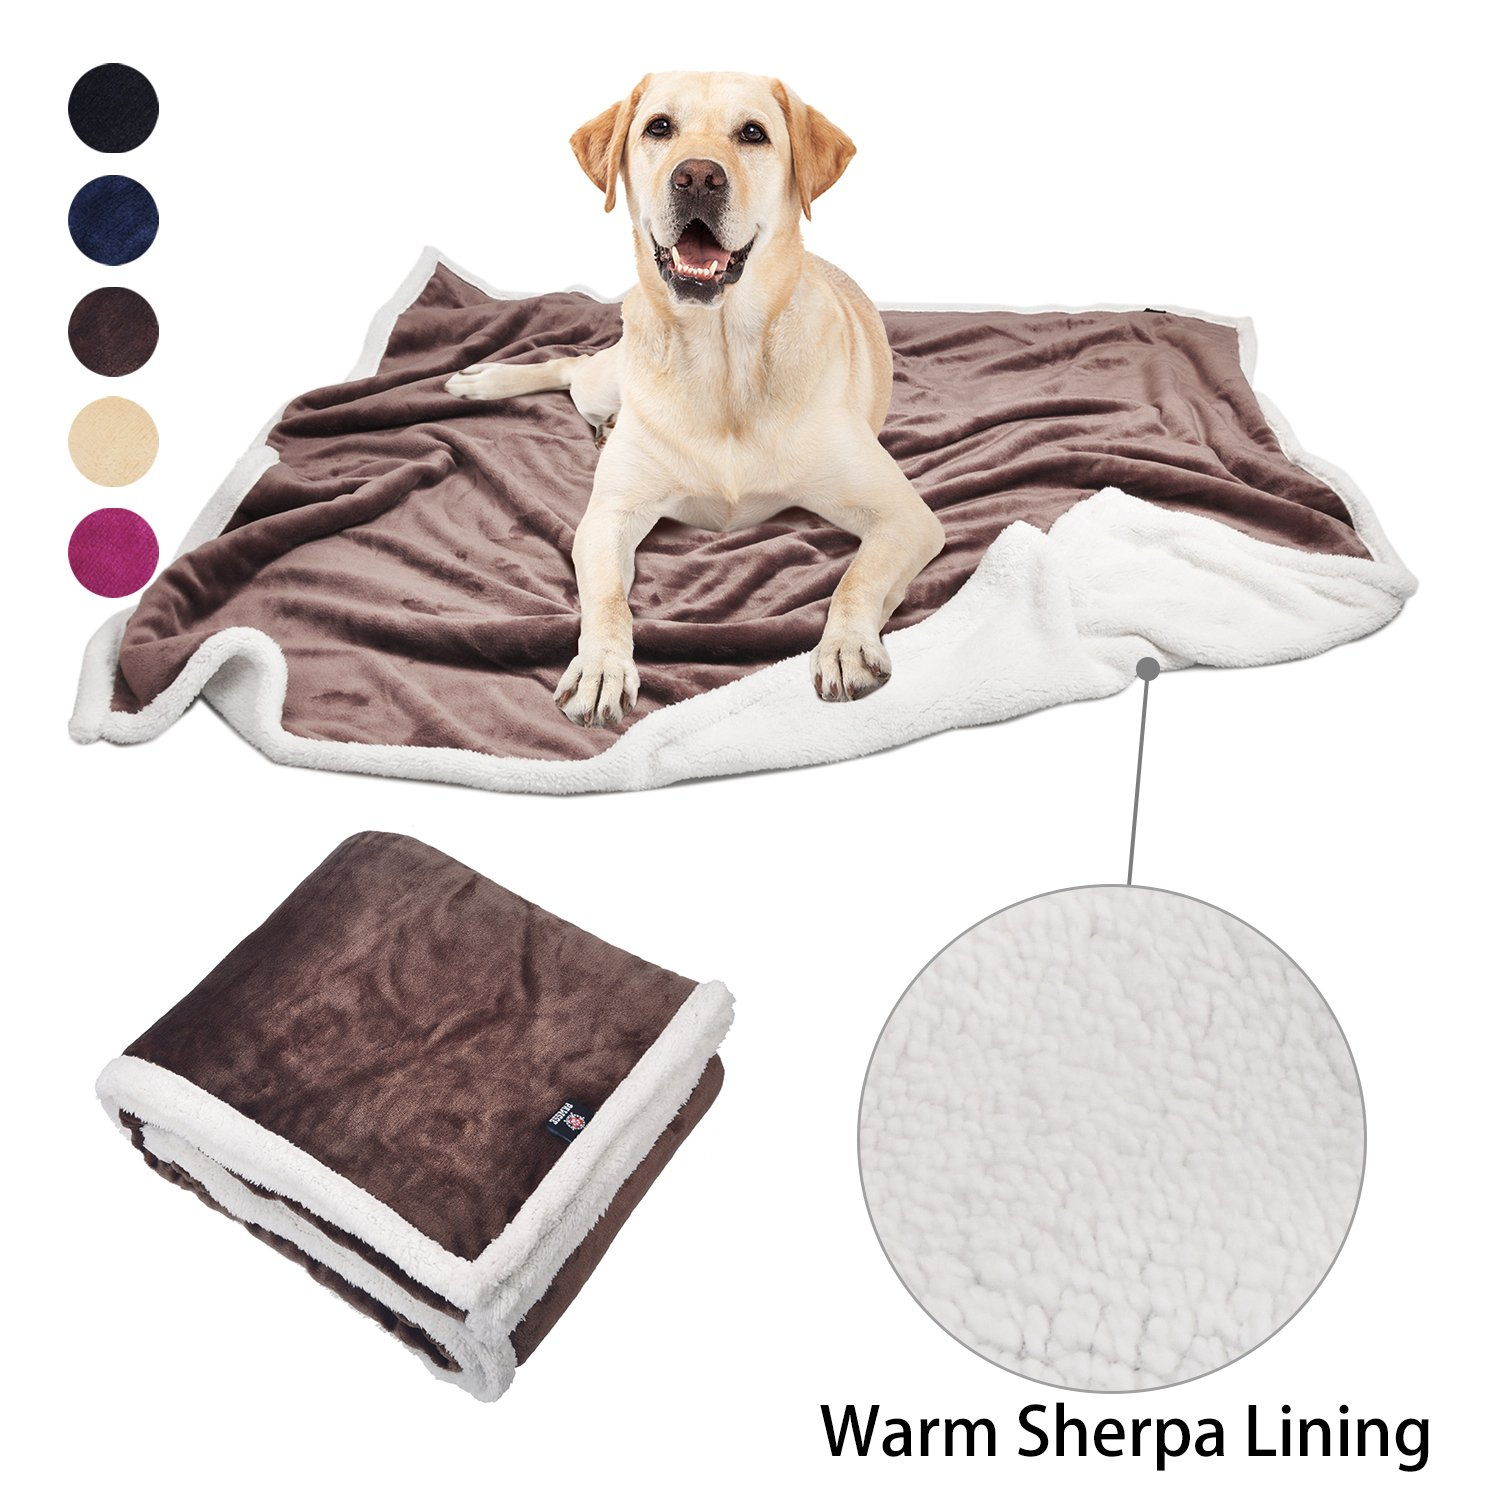 Pawsse Dog Puppy Blanket, Super Soft Warm Micro Fleece Plush Sherpa Pet Cat Throws Blanket Snuggle Cushion Mat for Small Animals 60x49